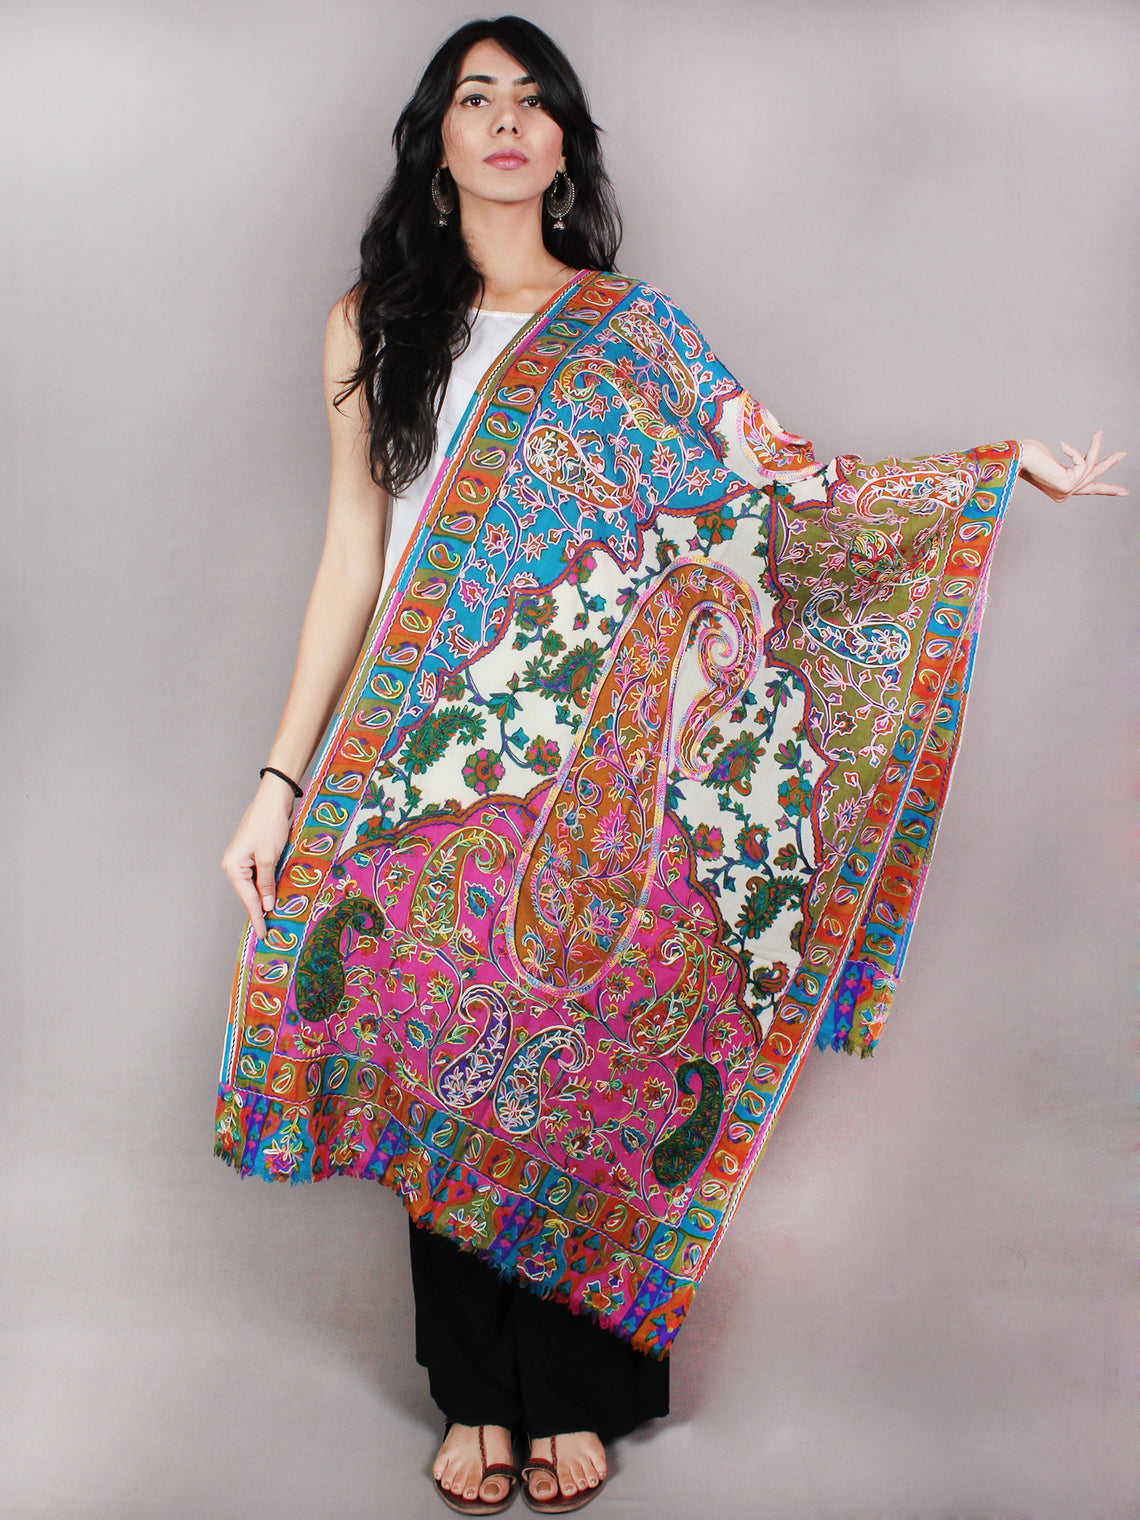 Ivory Multi Color Aari Embroidery Pure Wool Cashmere Stole from Kashmir - S6317077